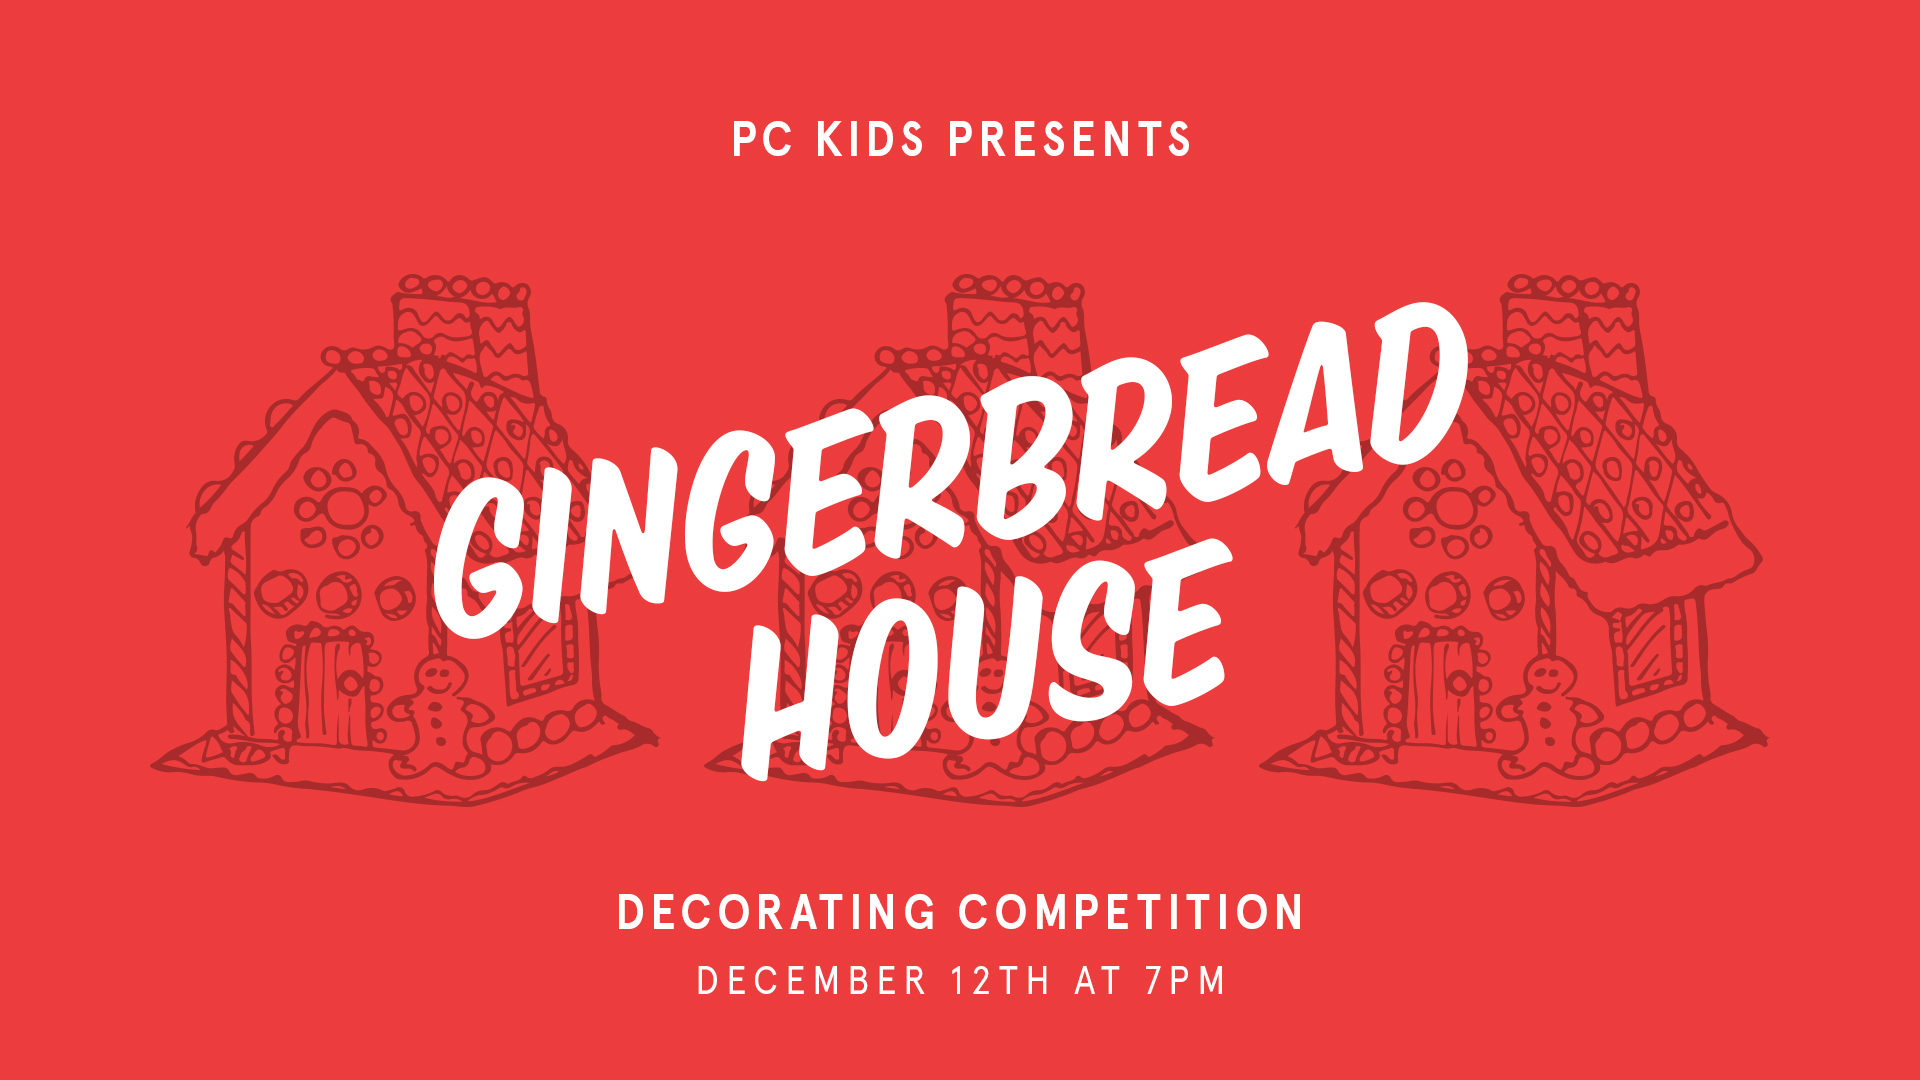 PC Kids Gingerbread Web.jpg